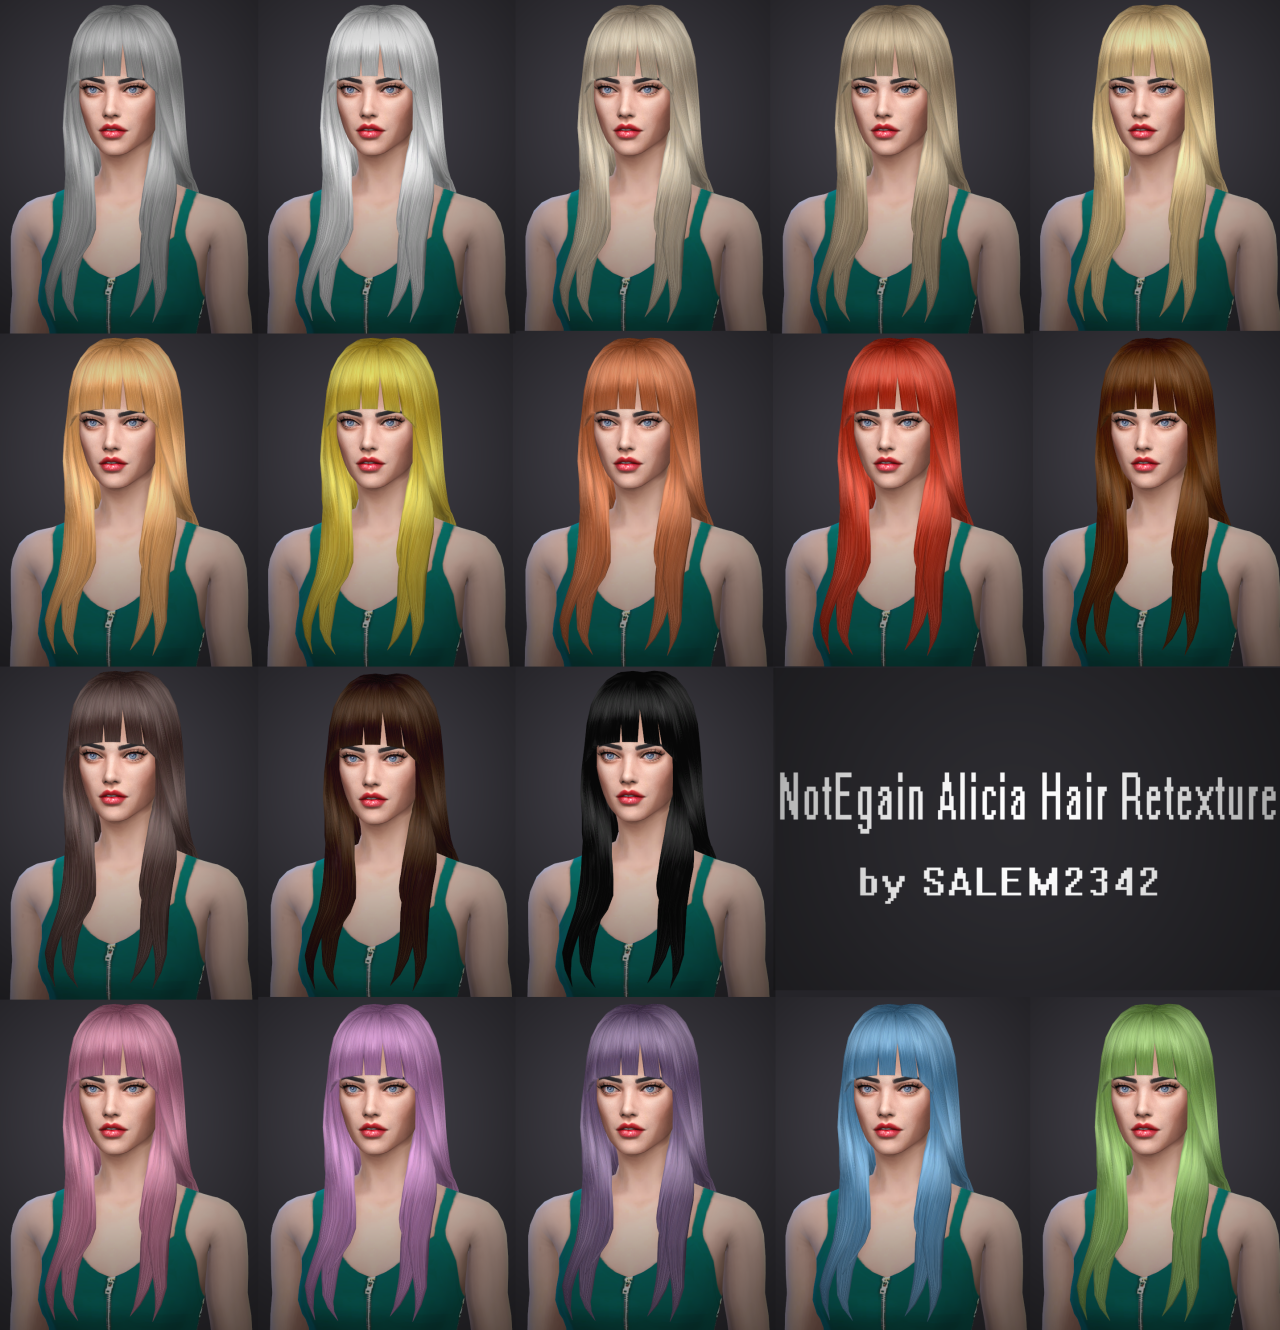 NotEgain Alicia Hair Retexture by Salem2342